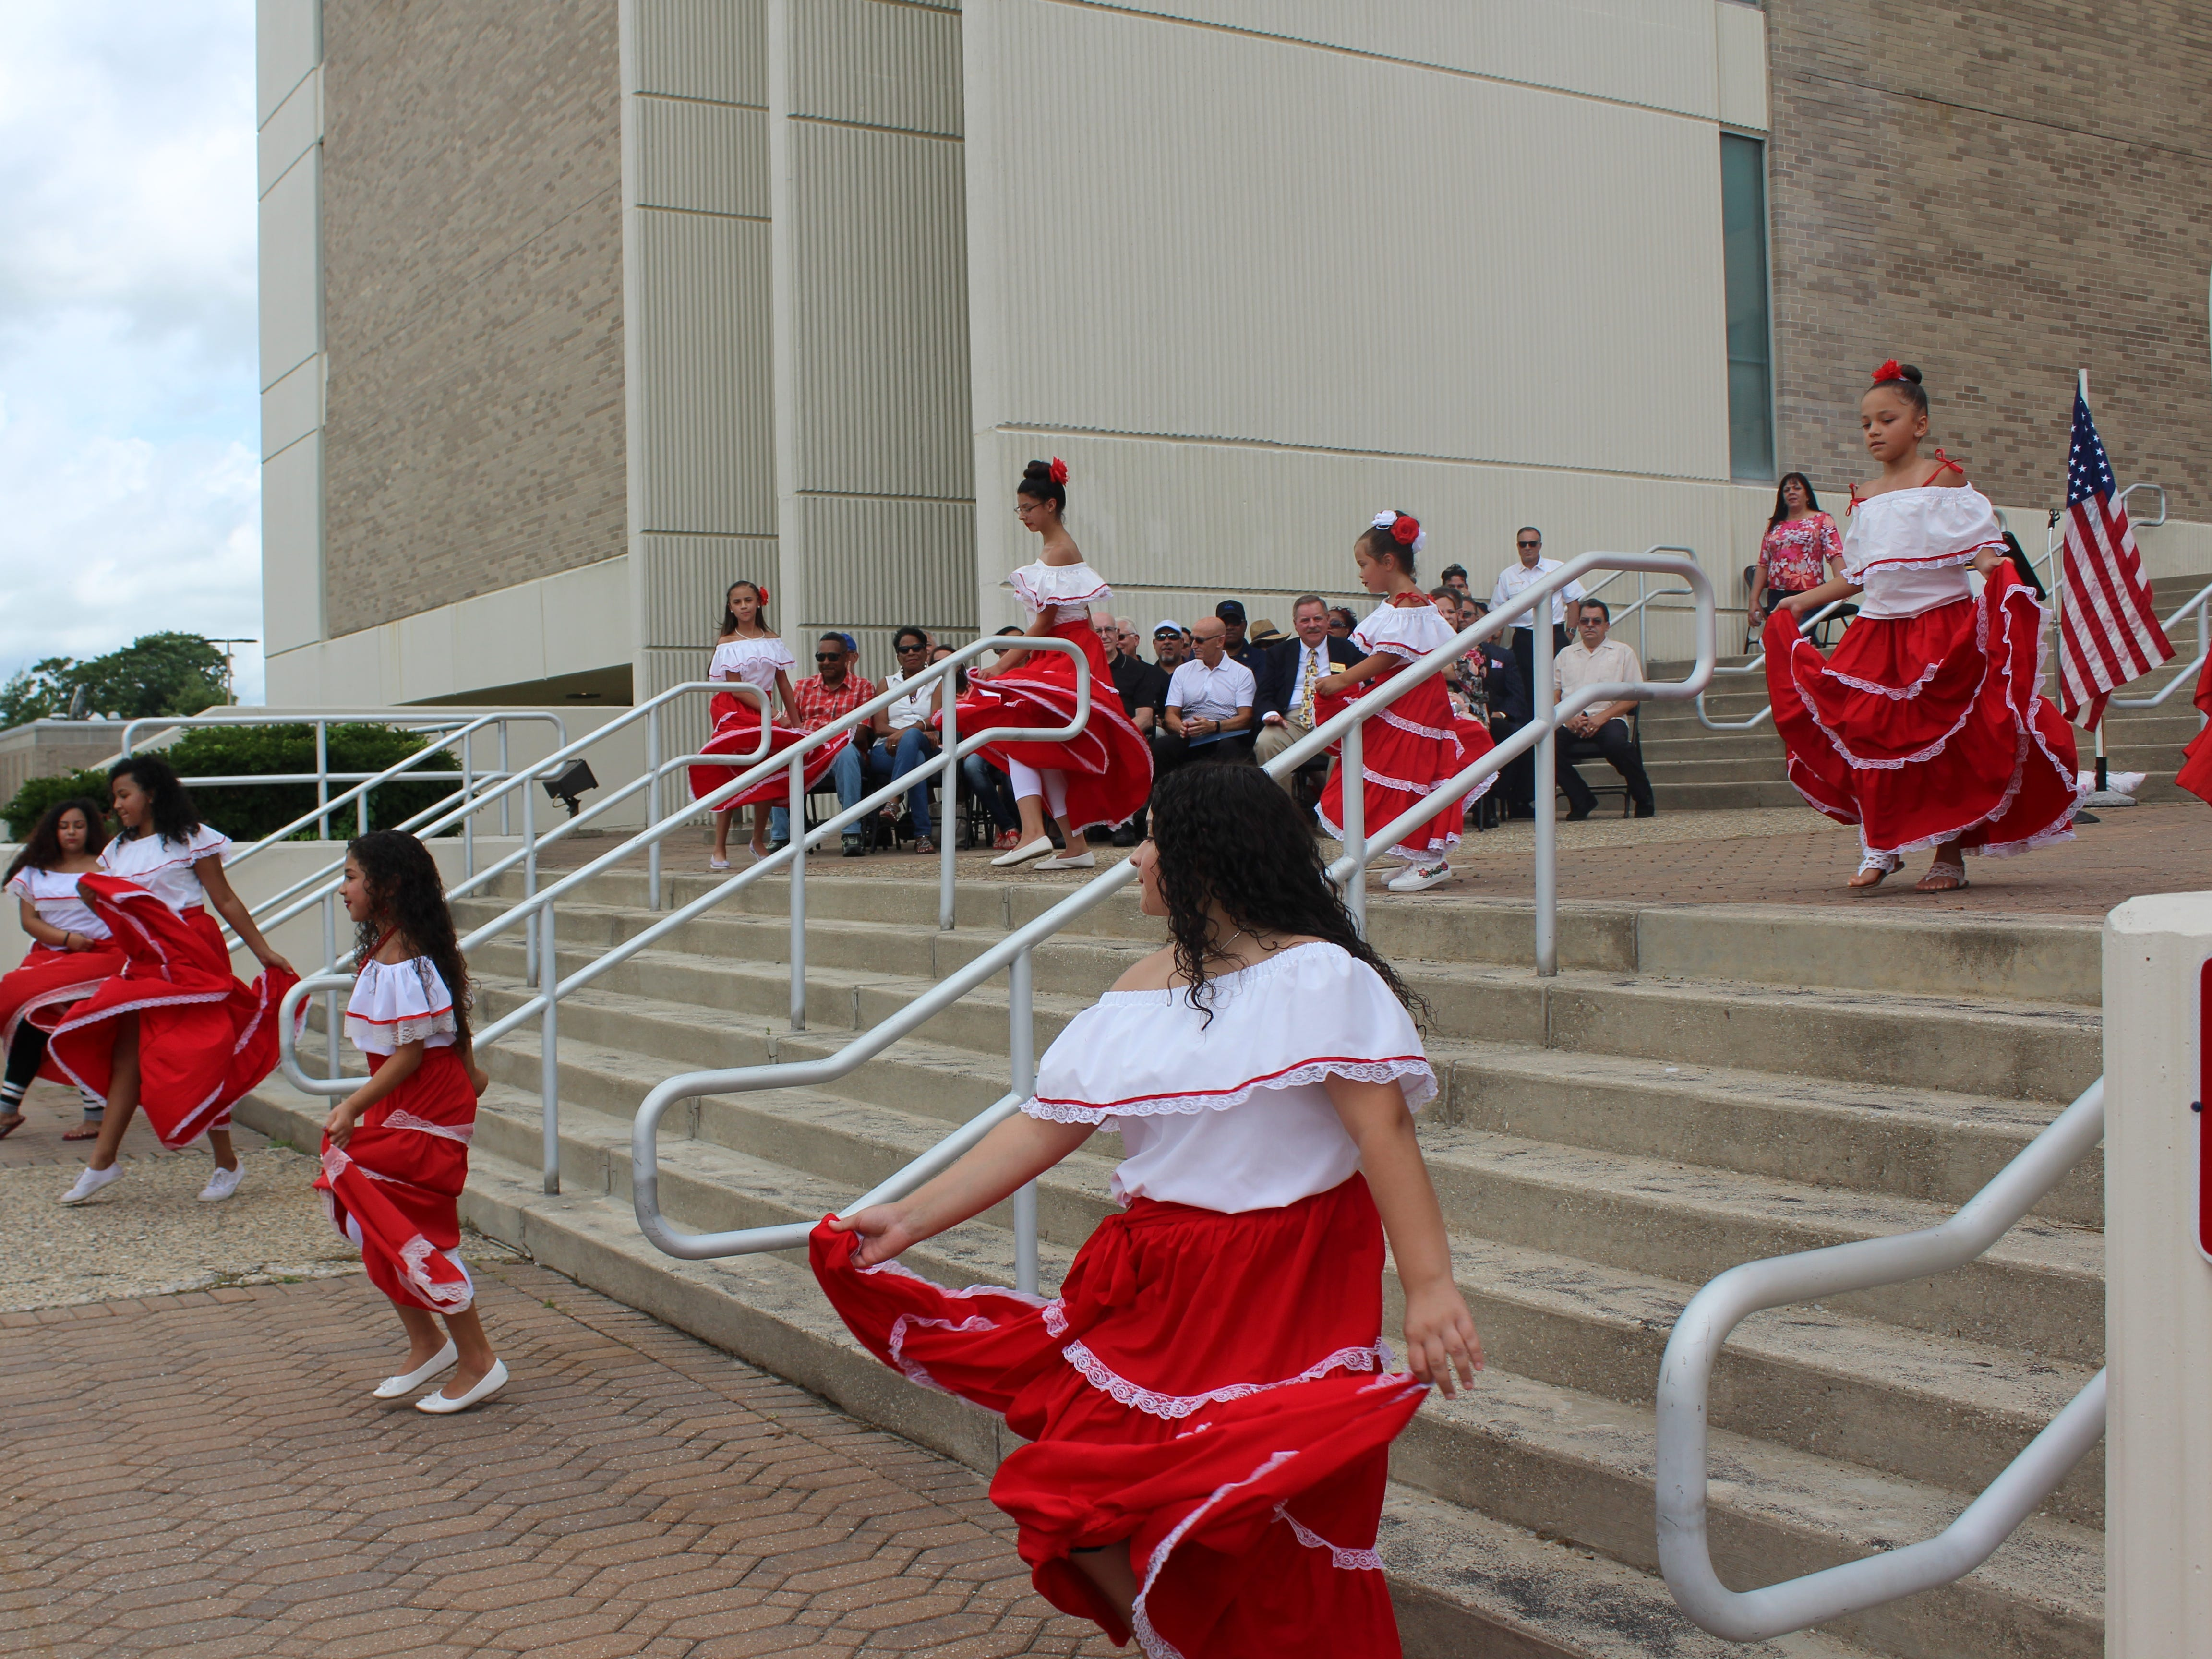 Some of the dancers and performances during the flag-raising ceremony for the Puerto Rican Festival at Vineland City Hall on Sunday, July 22.